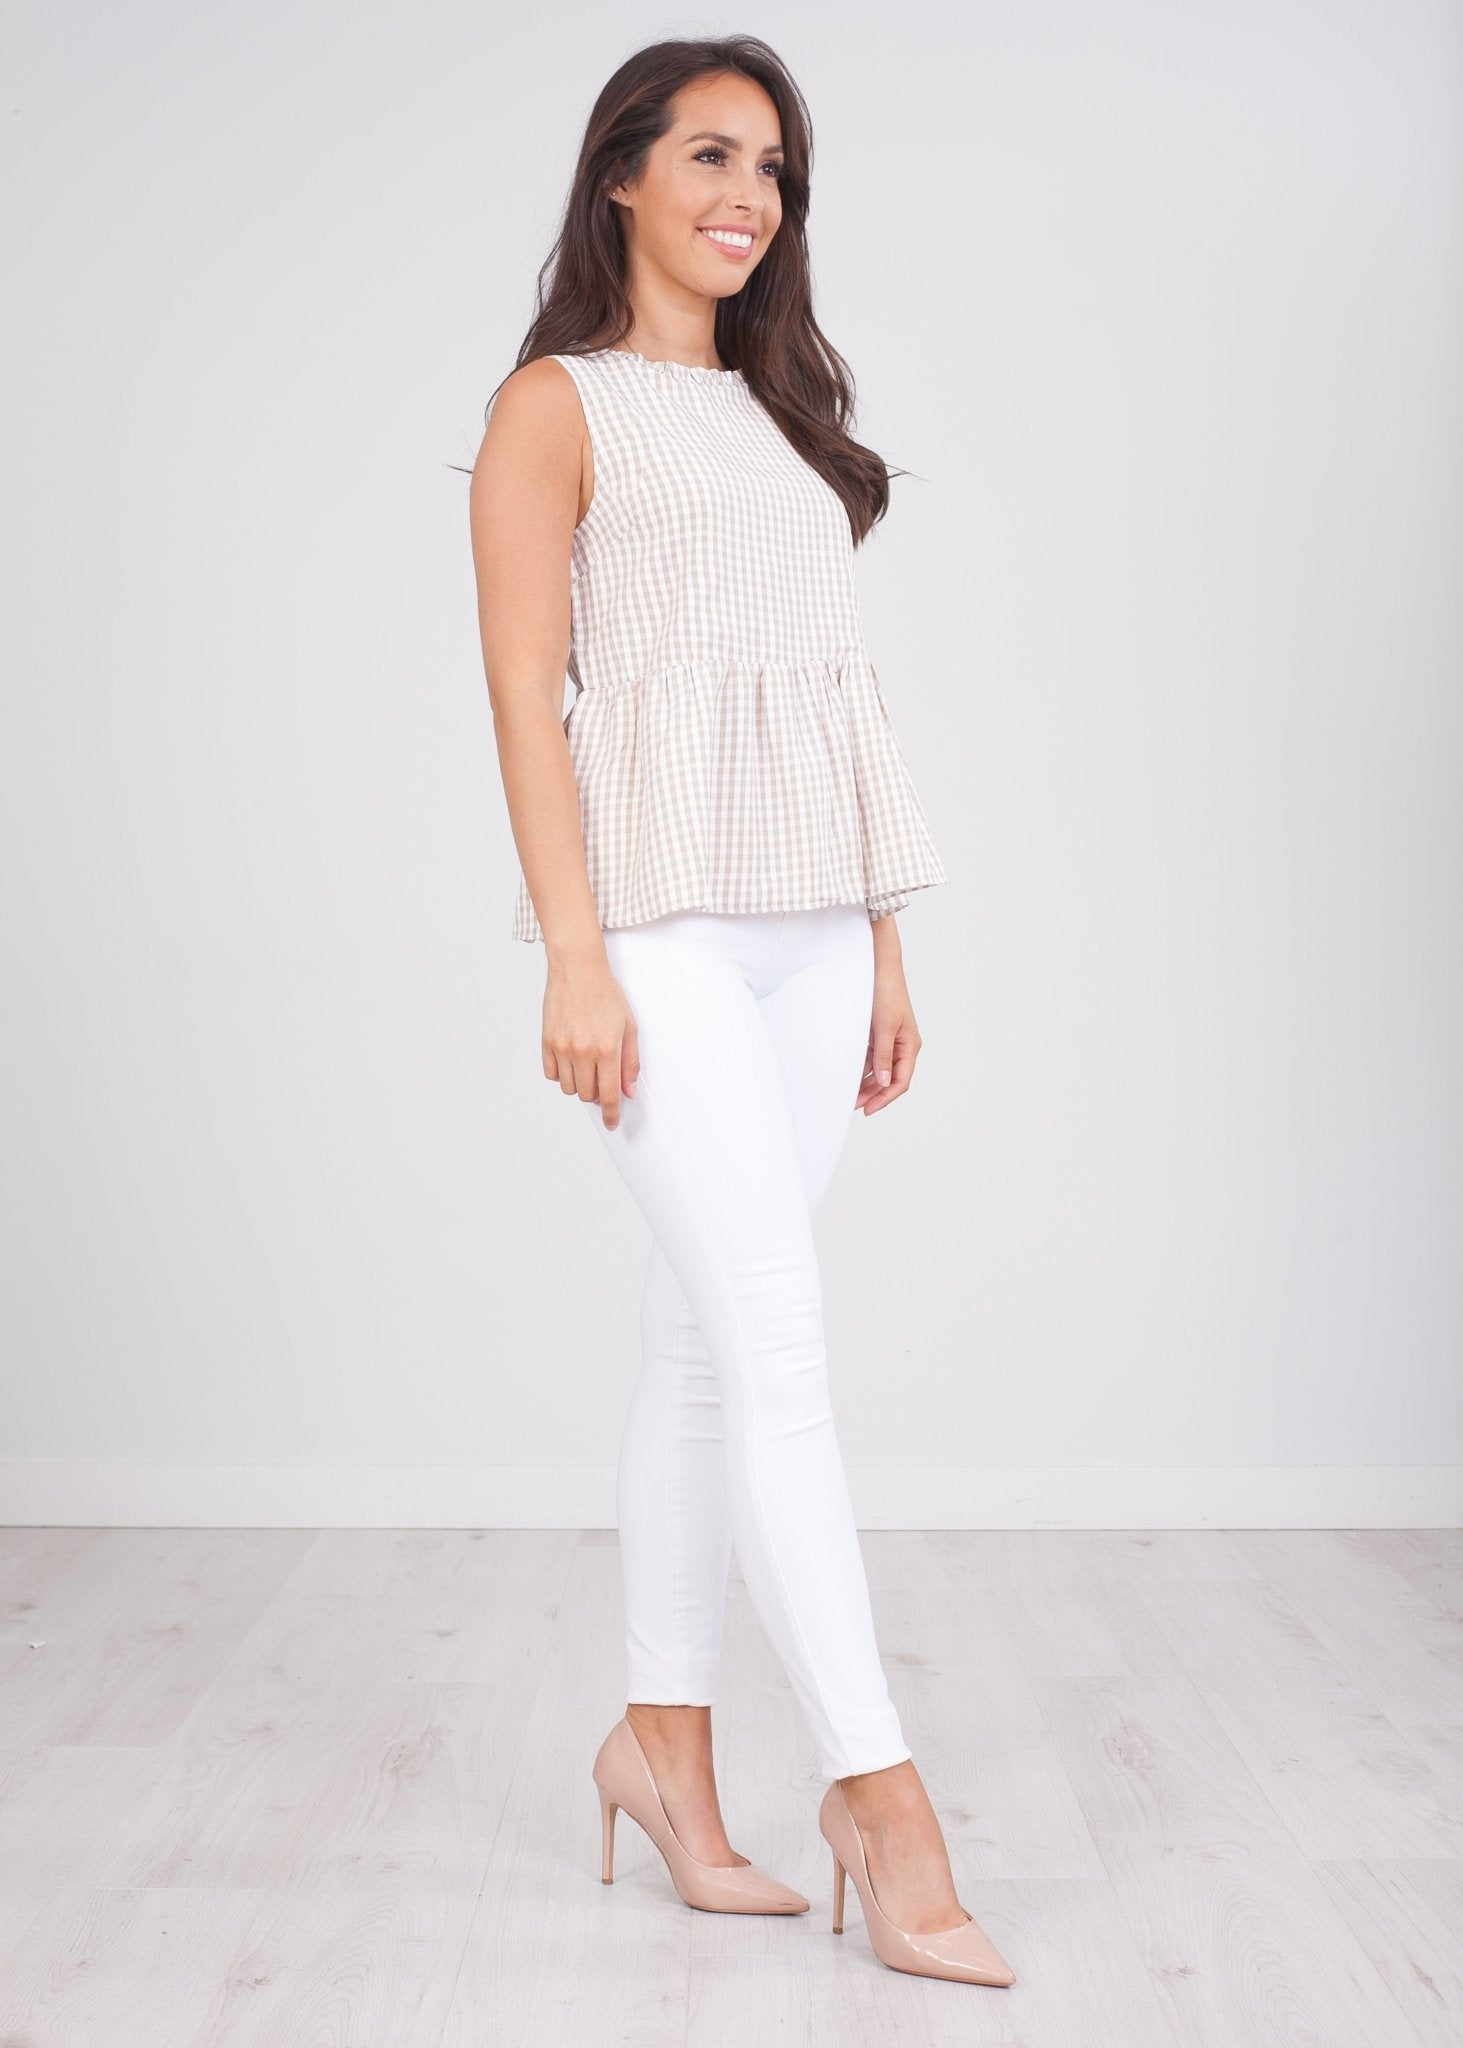 Cherie Beige Gingham Top - The Walk in Wardrobe